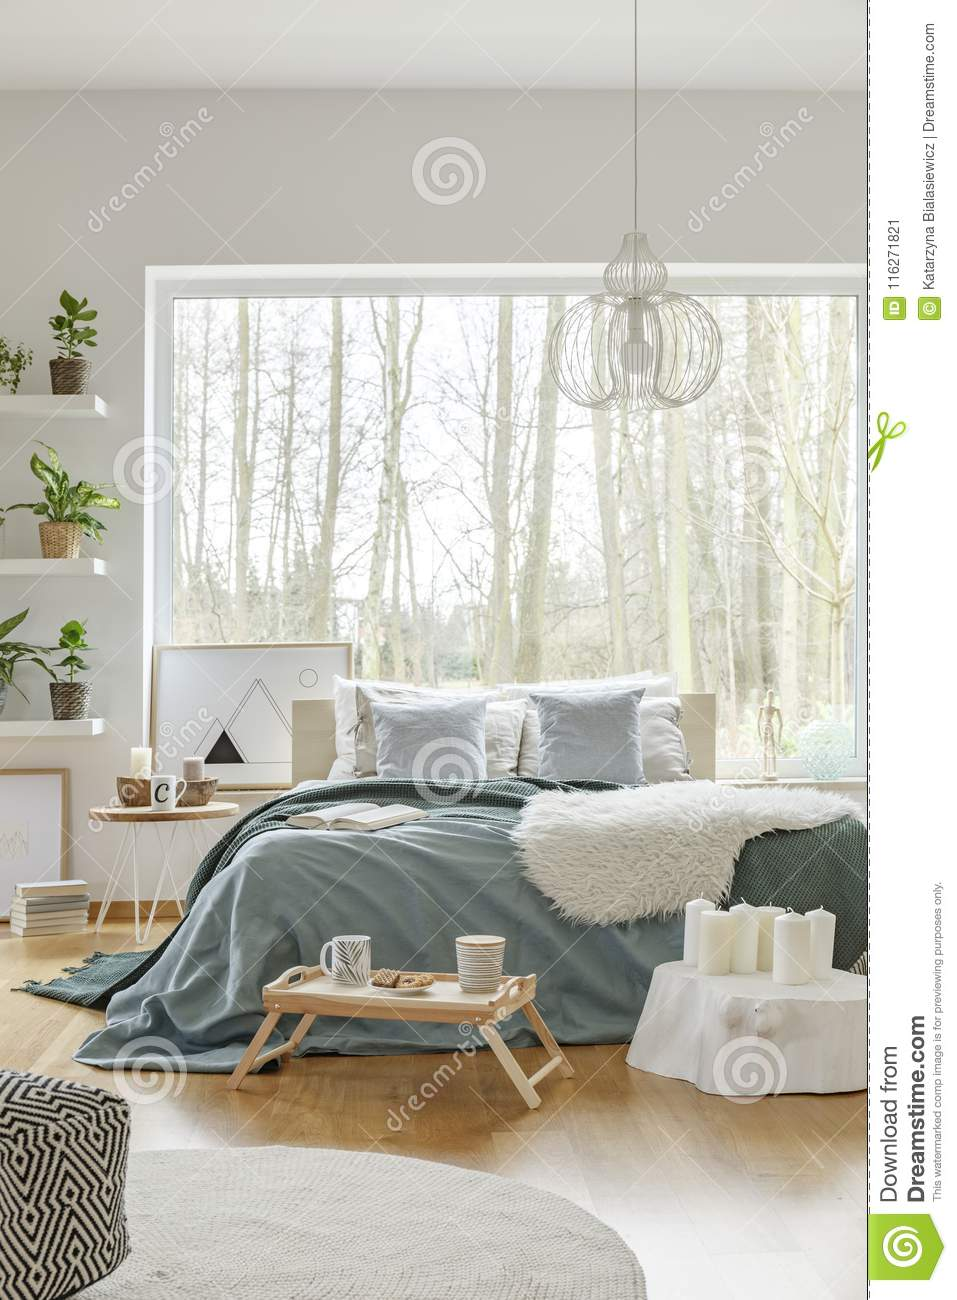 White And Green Bedroom Interior Stock Image - Image of ...